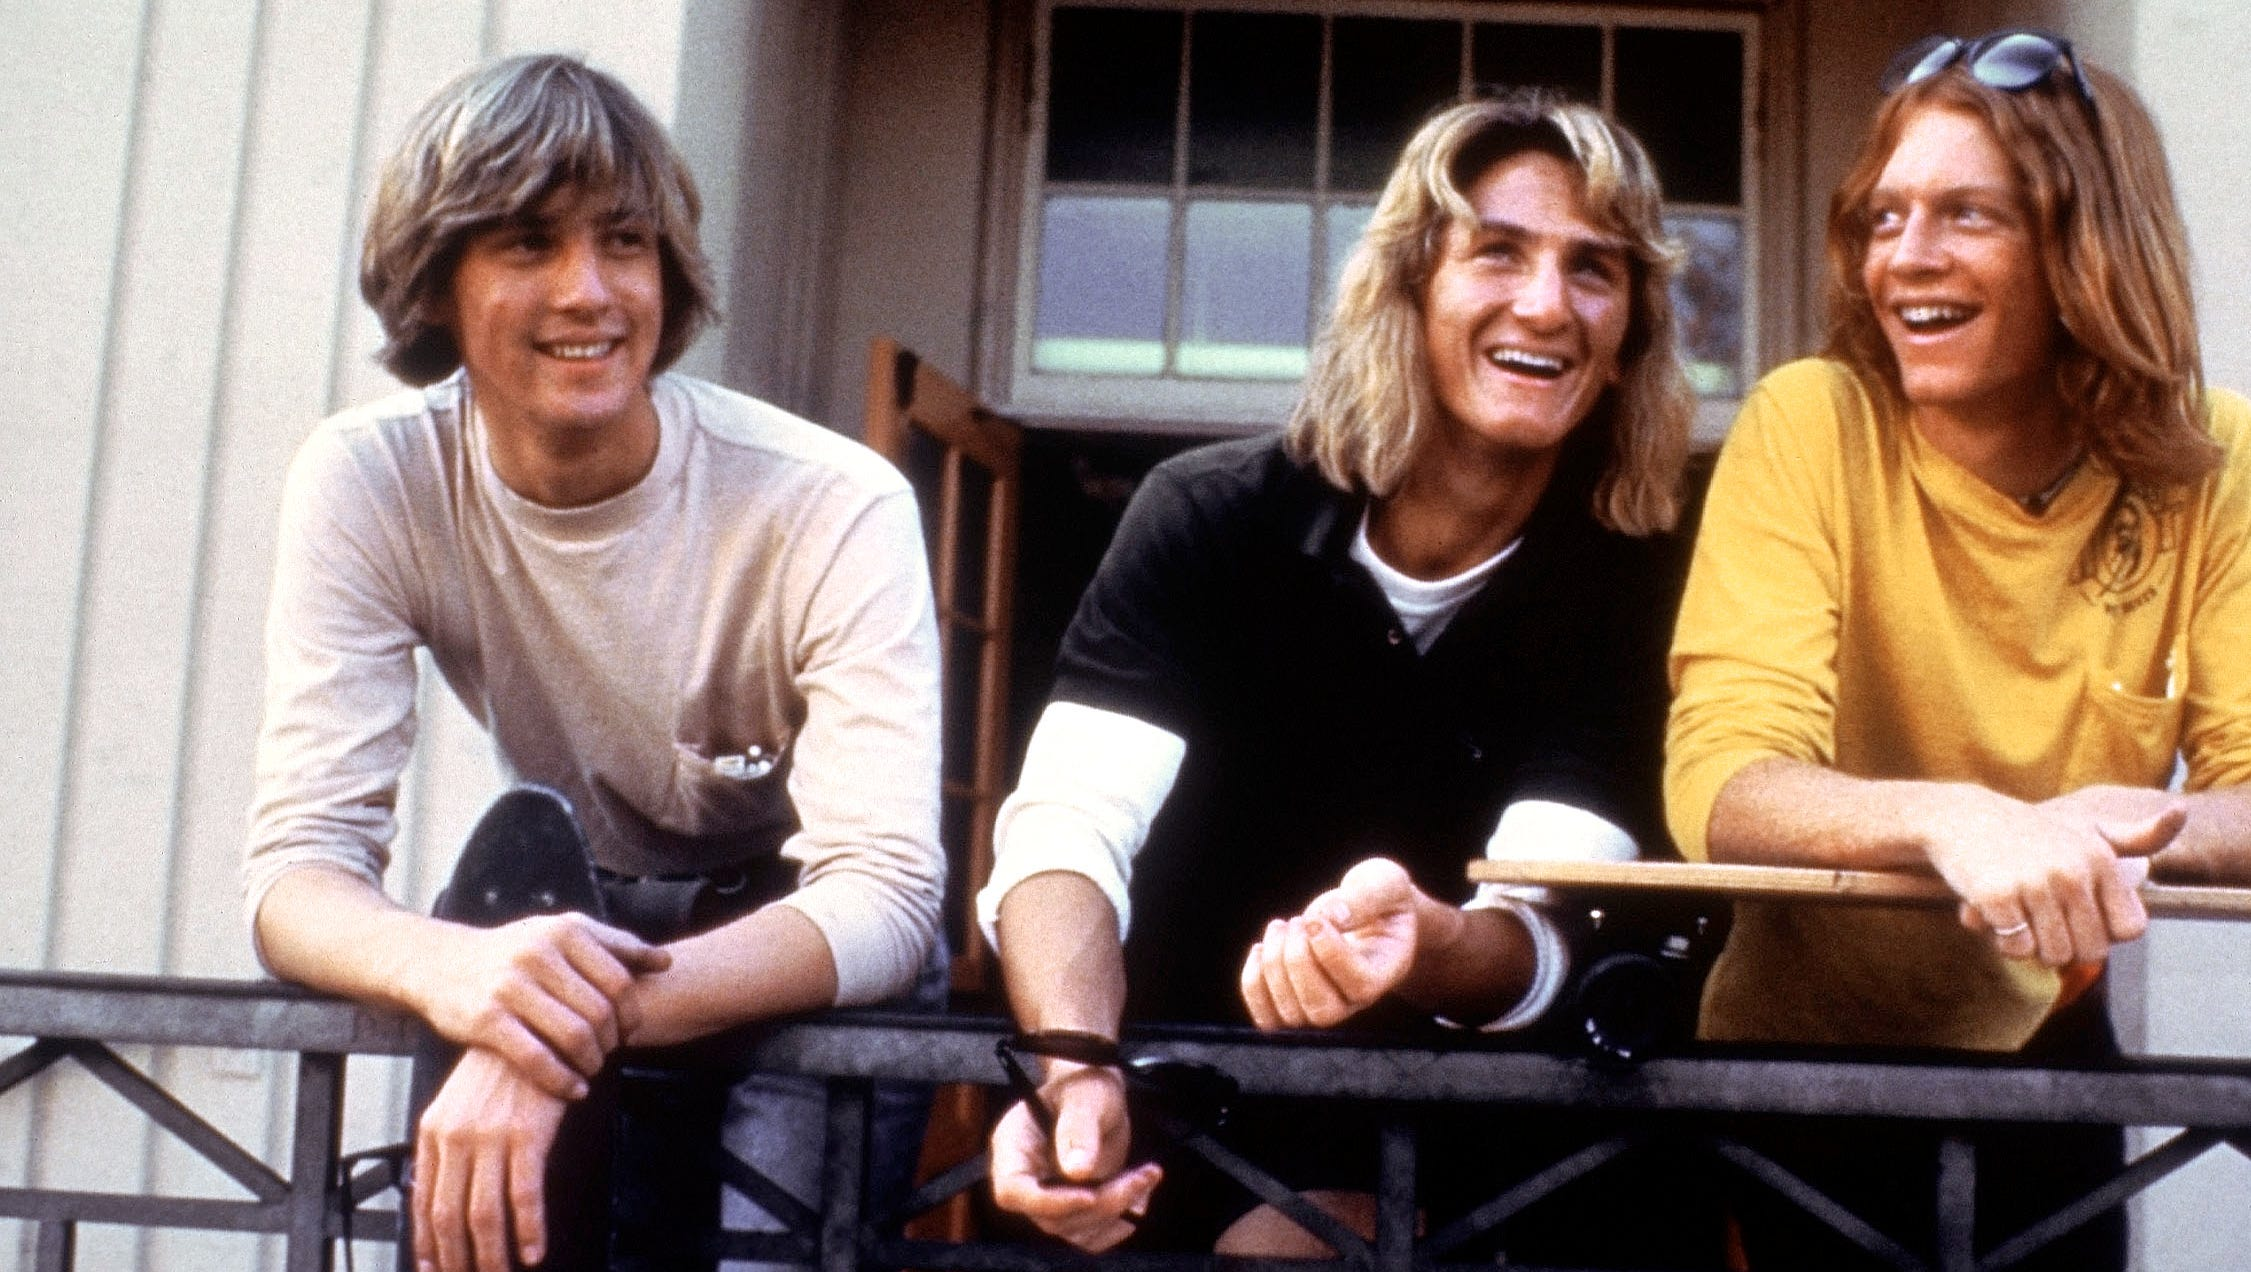 Before he was a serious actor, Sean Penn was stoner Jeff Spicoli in 1982's 'Fast Times at Ridgement High, along with Anthony Edwards, left and Eric Stotlz.